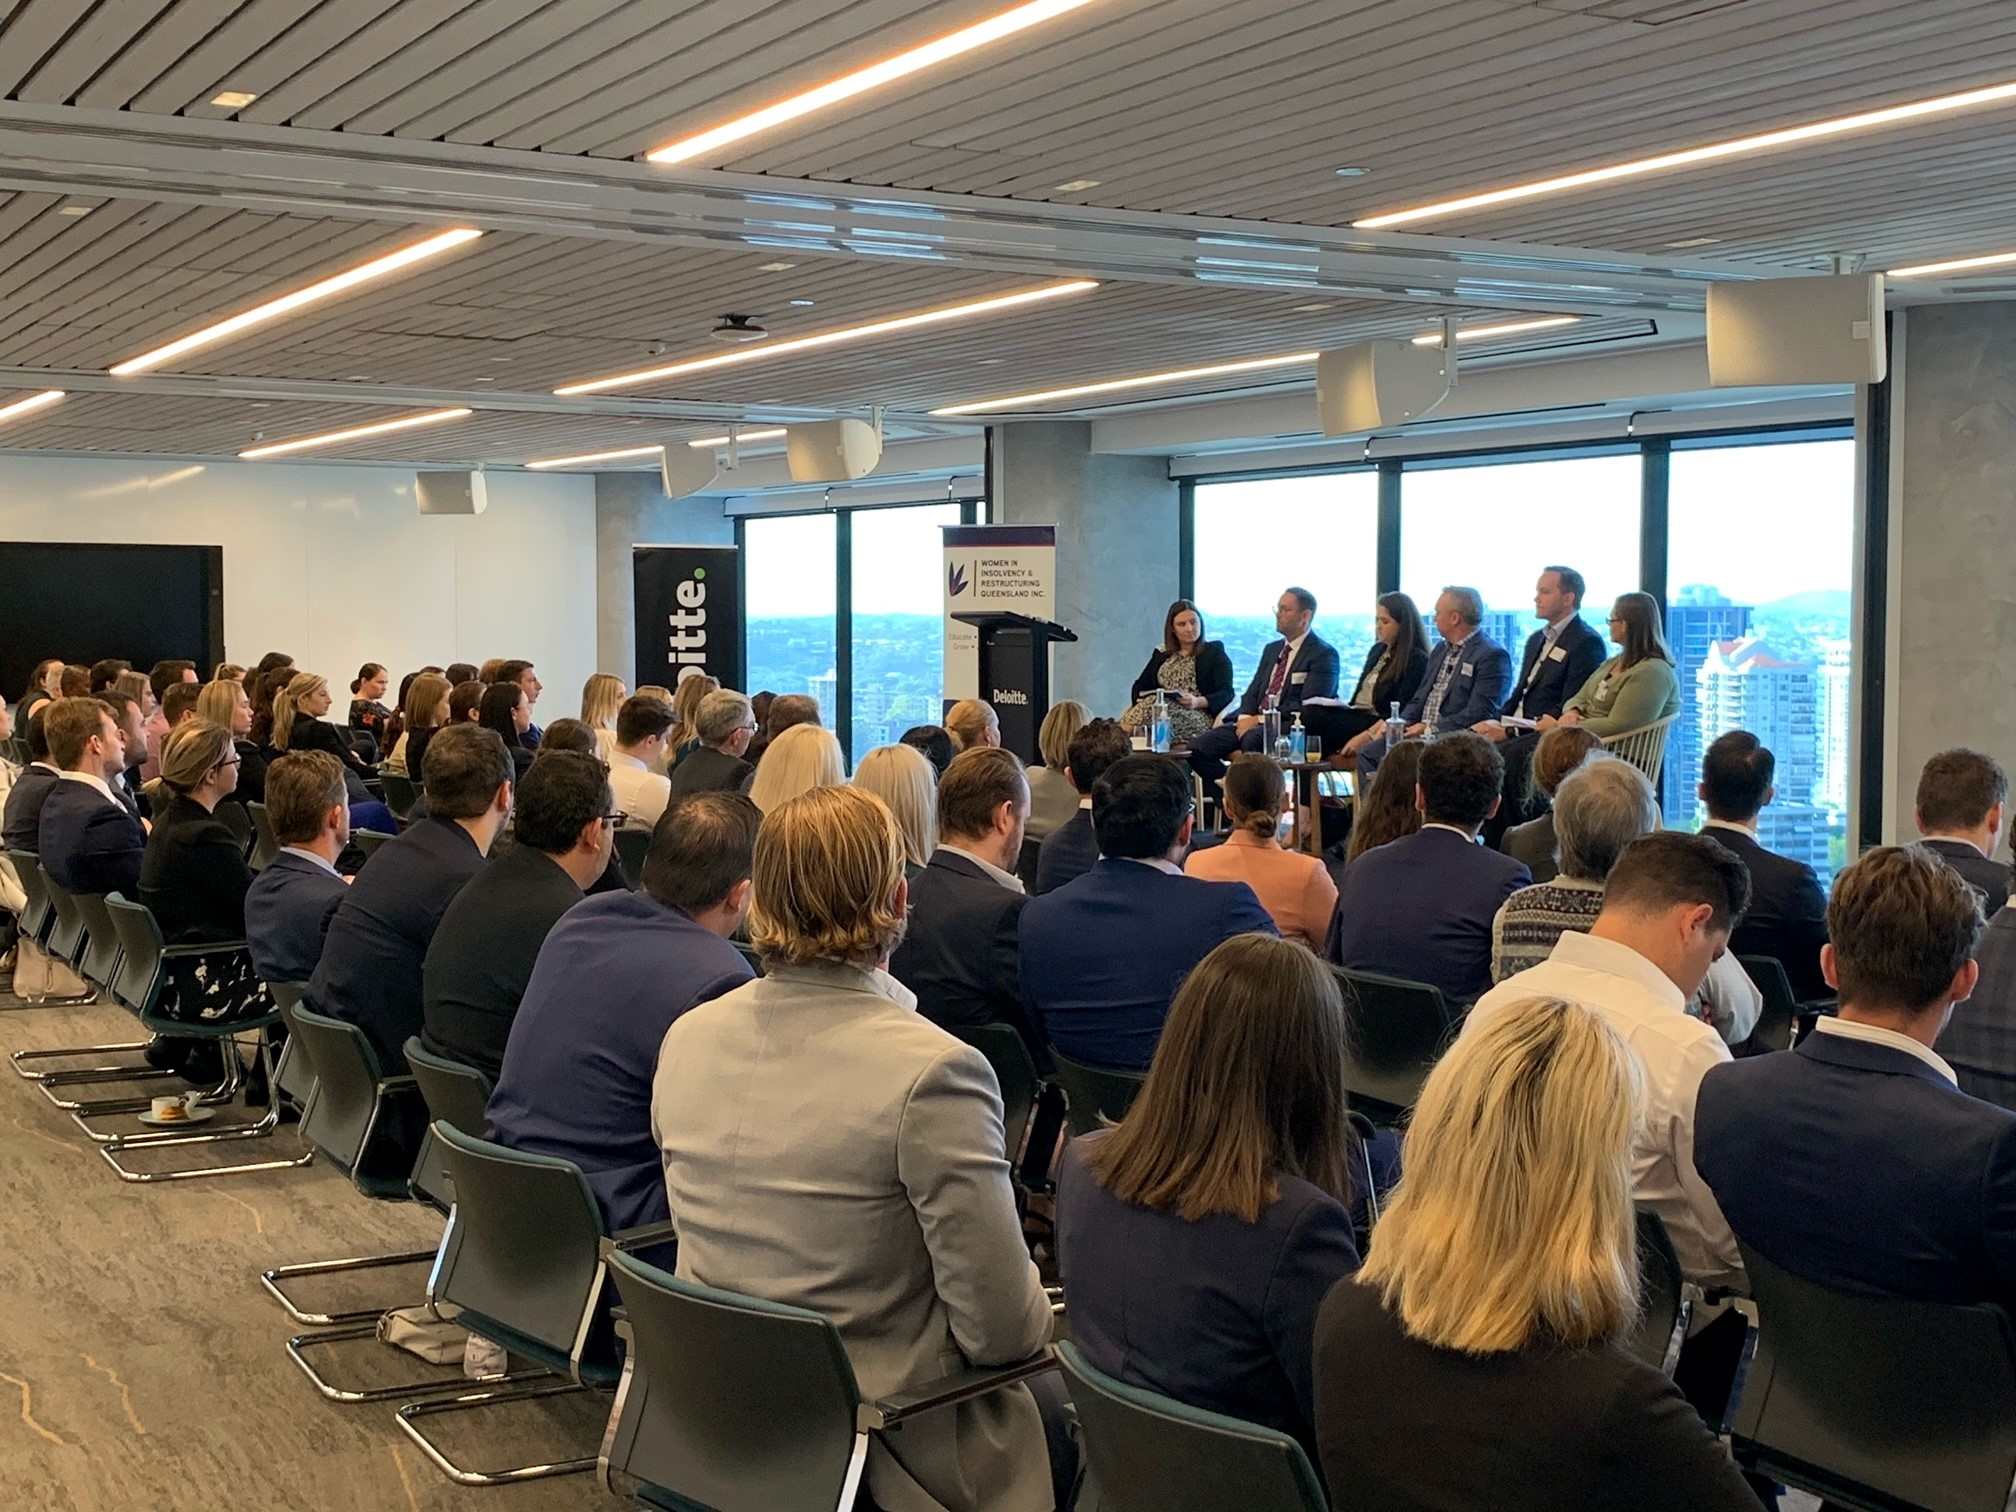 2021 Breakfast Panel Discussion - Insolvency Industry Update